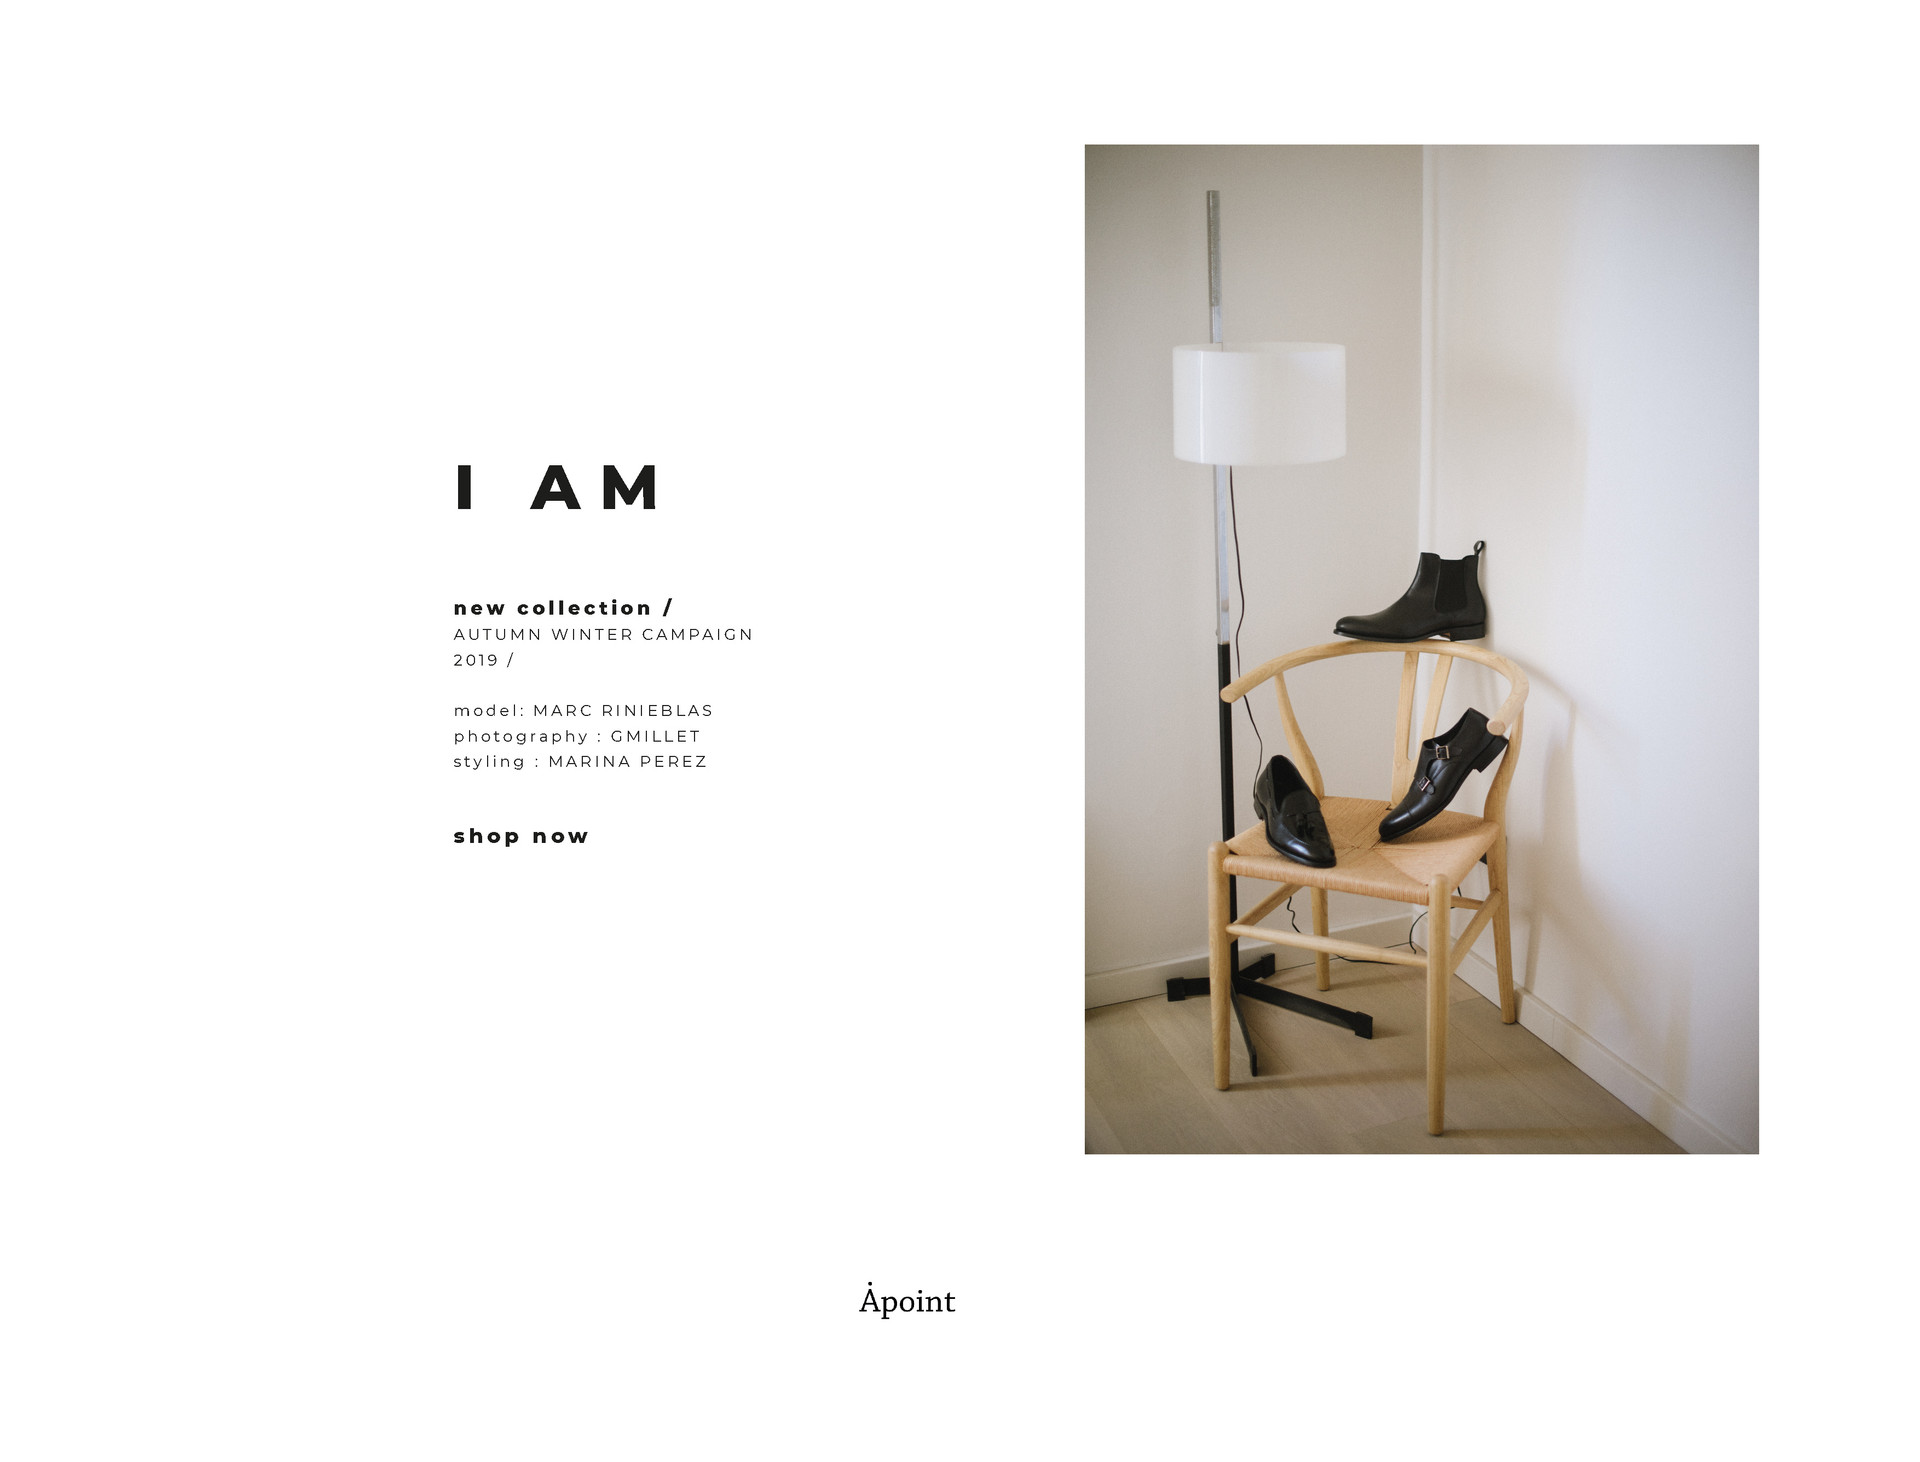 I AM / APOINT